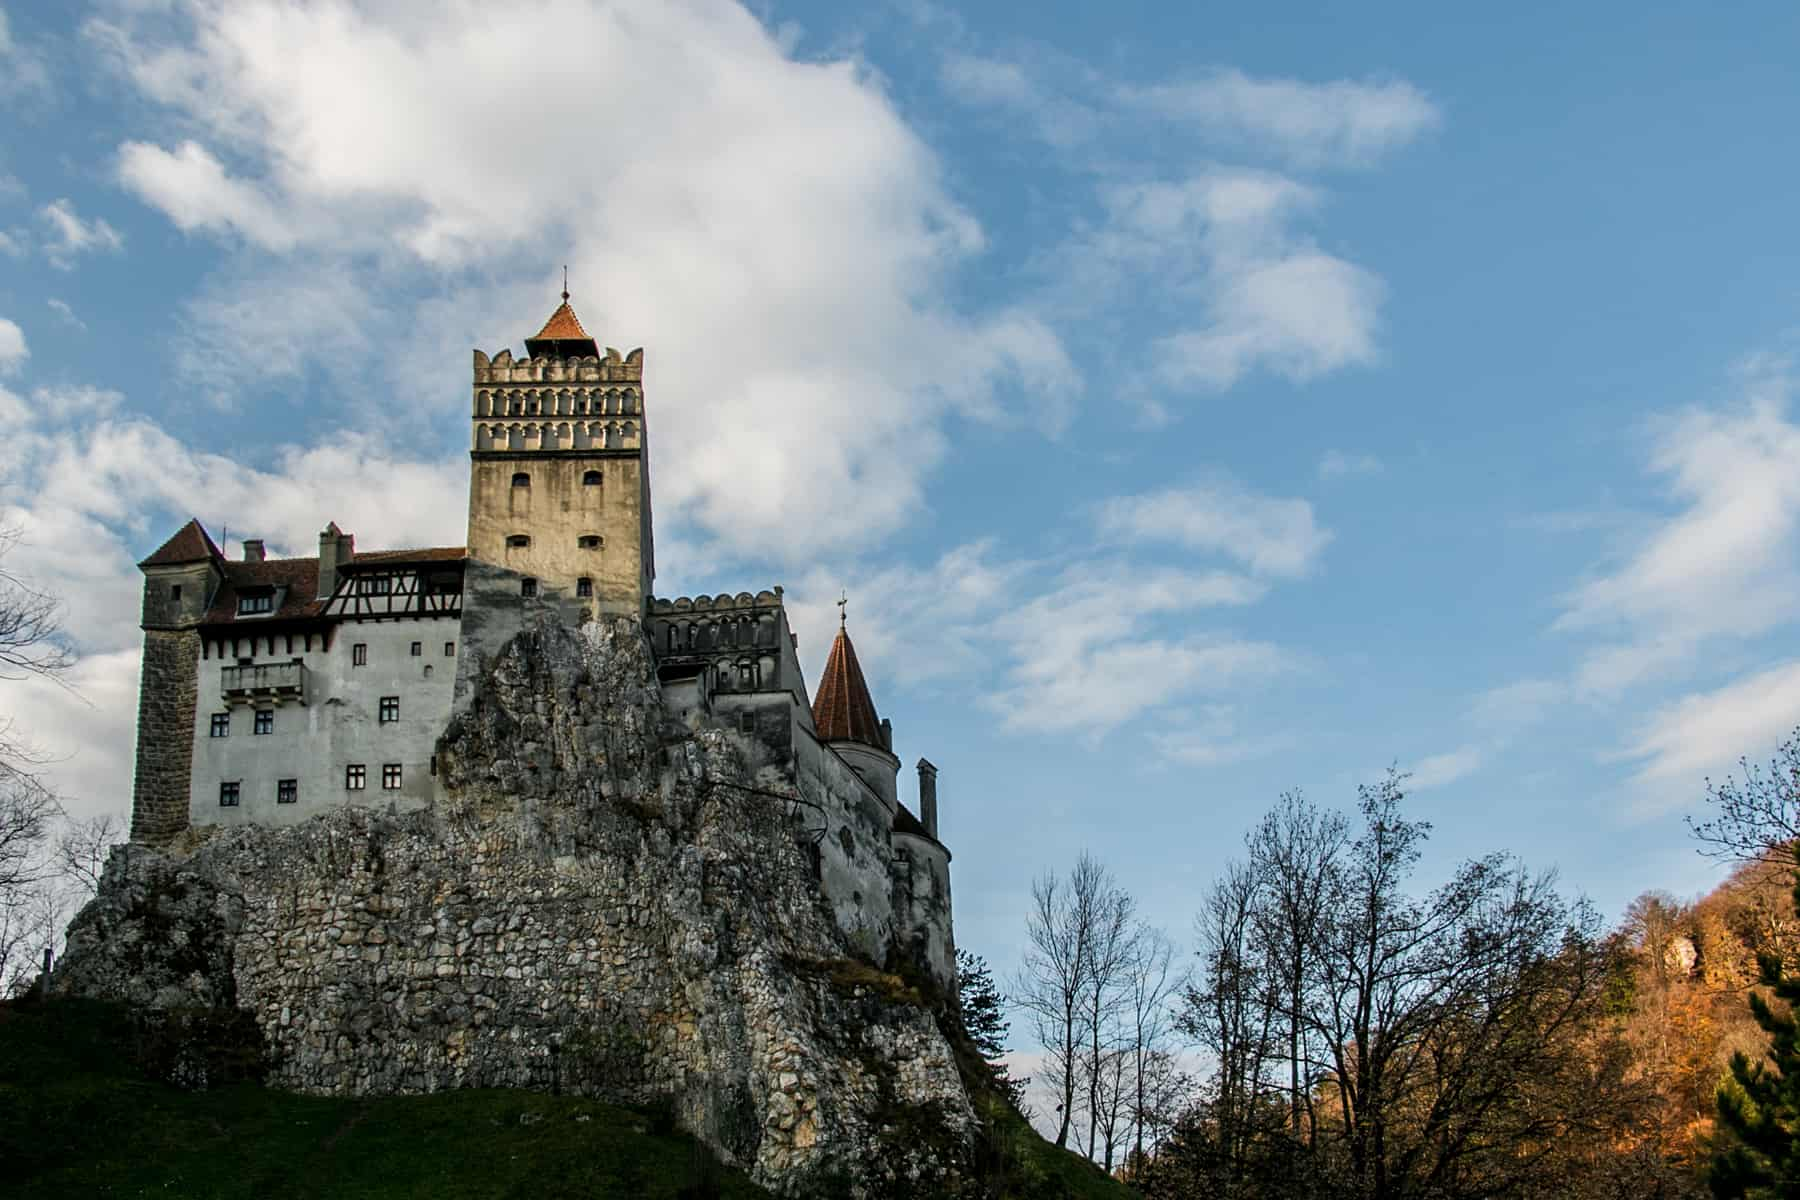 An old castle on top of a rocky mountain.